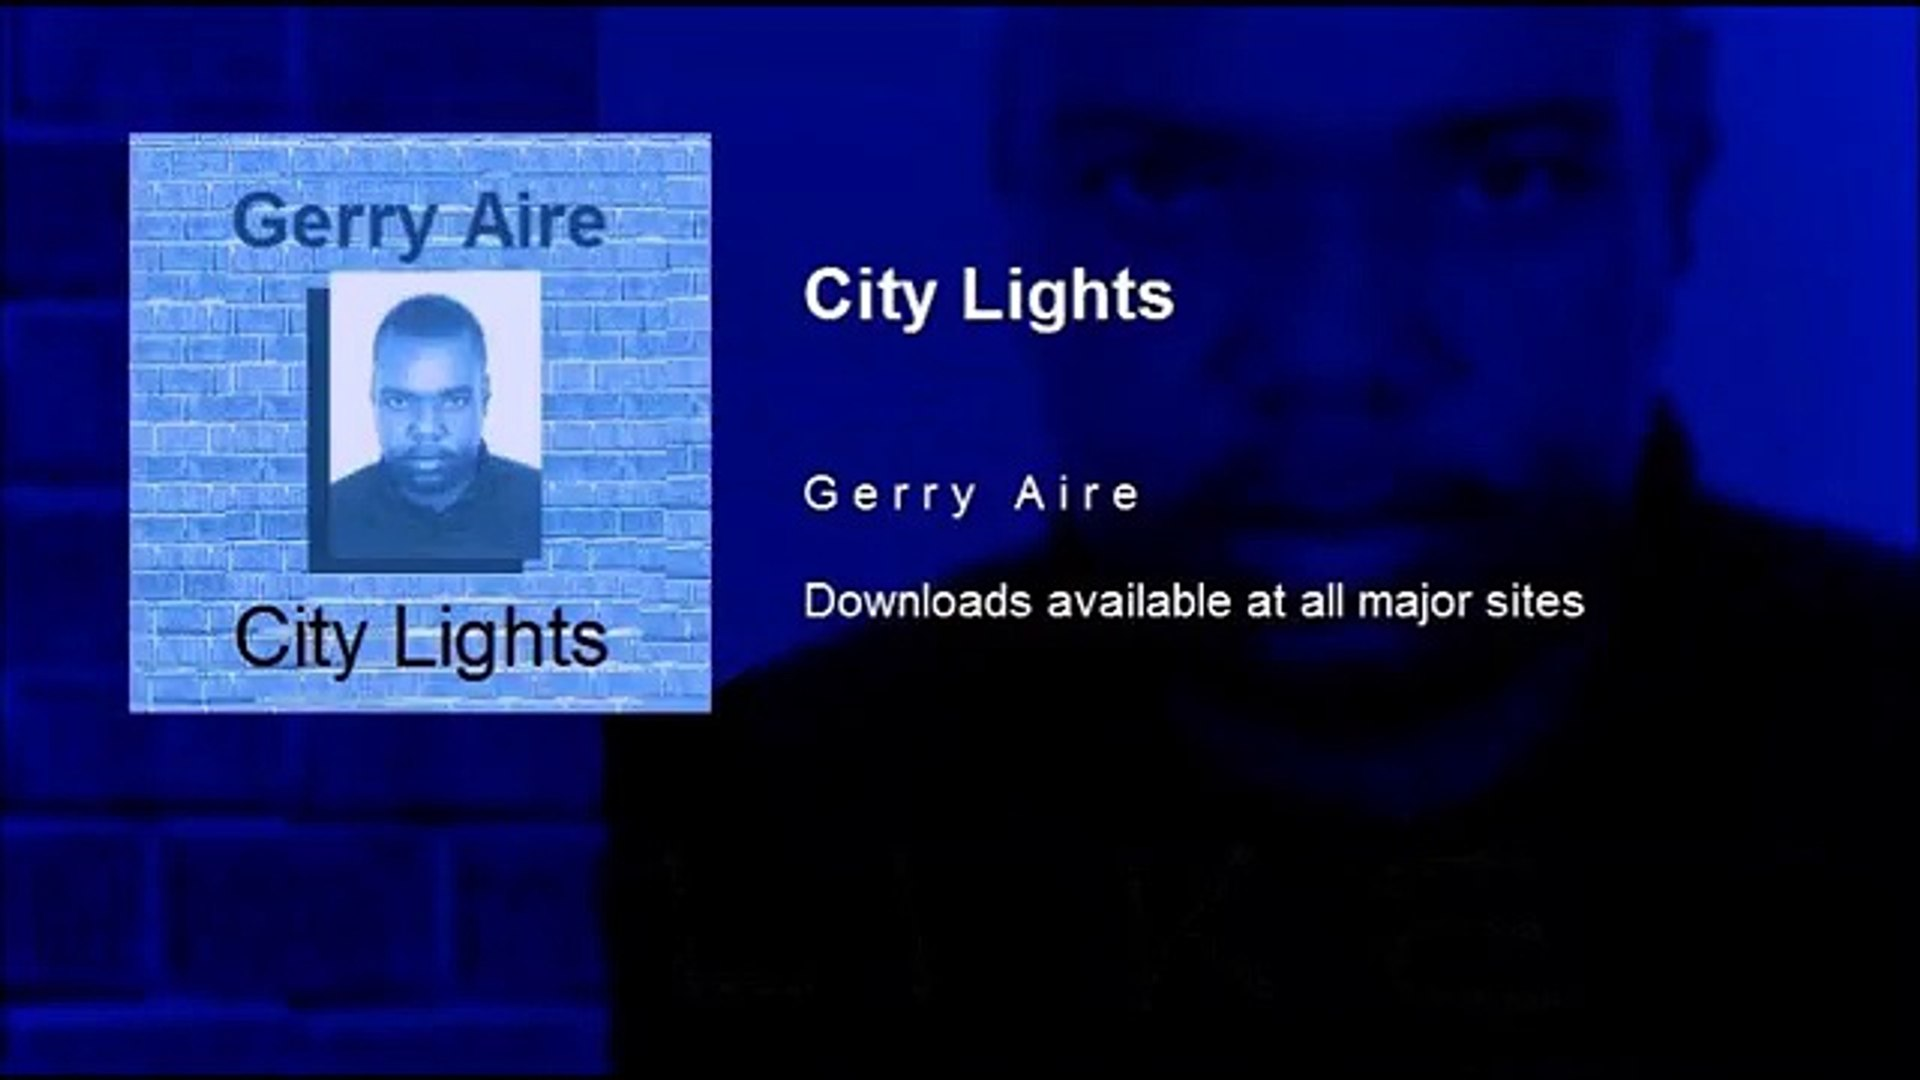 'City Lights' by Gerry Aire